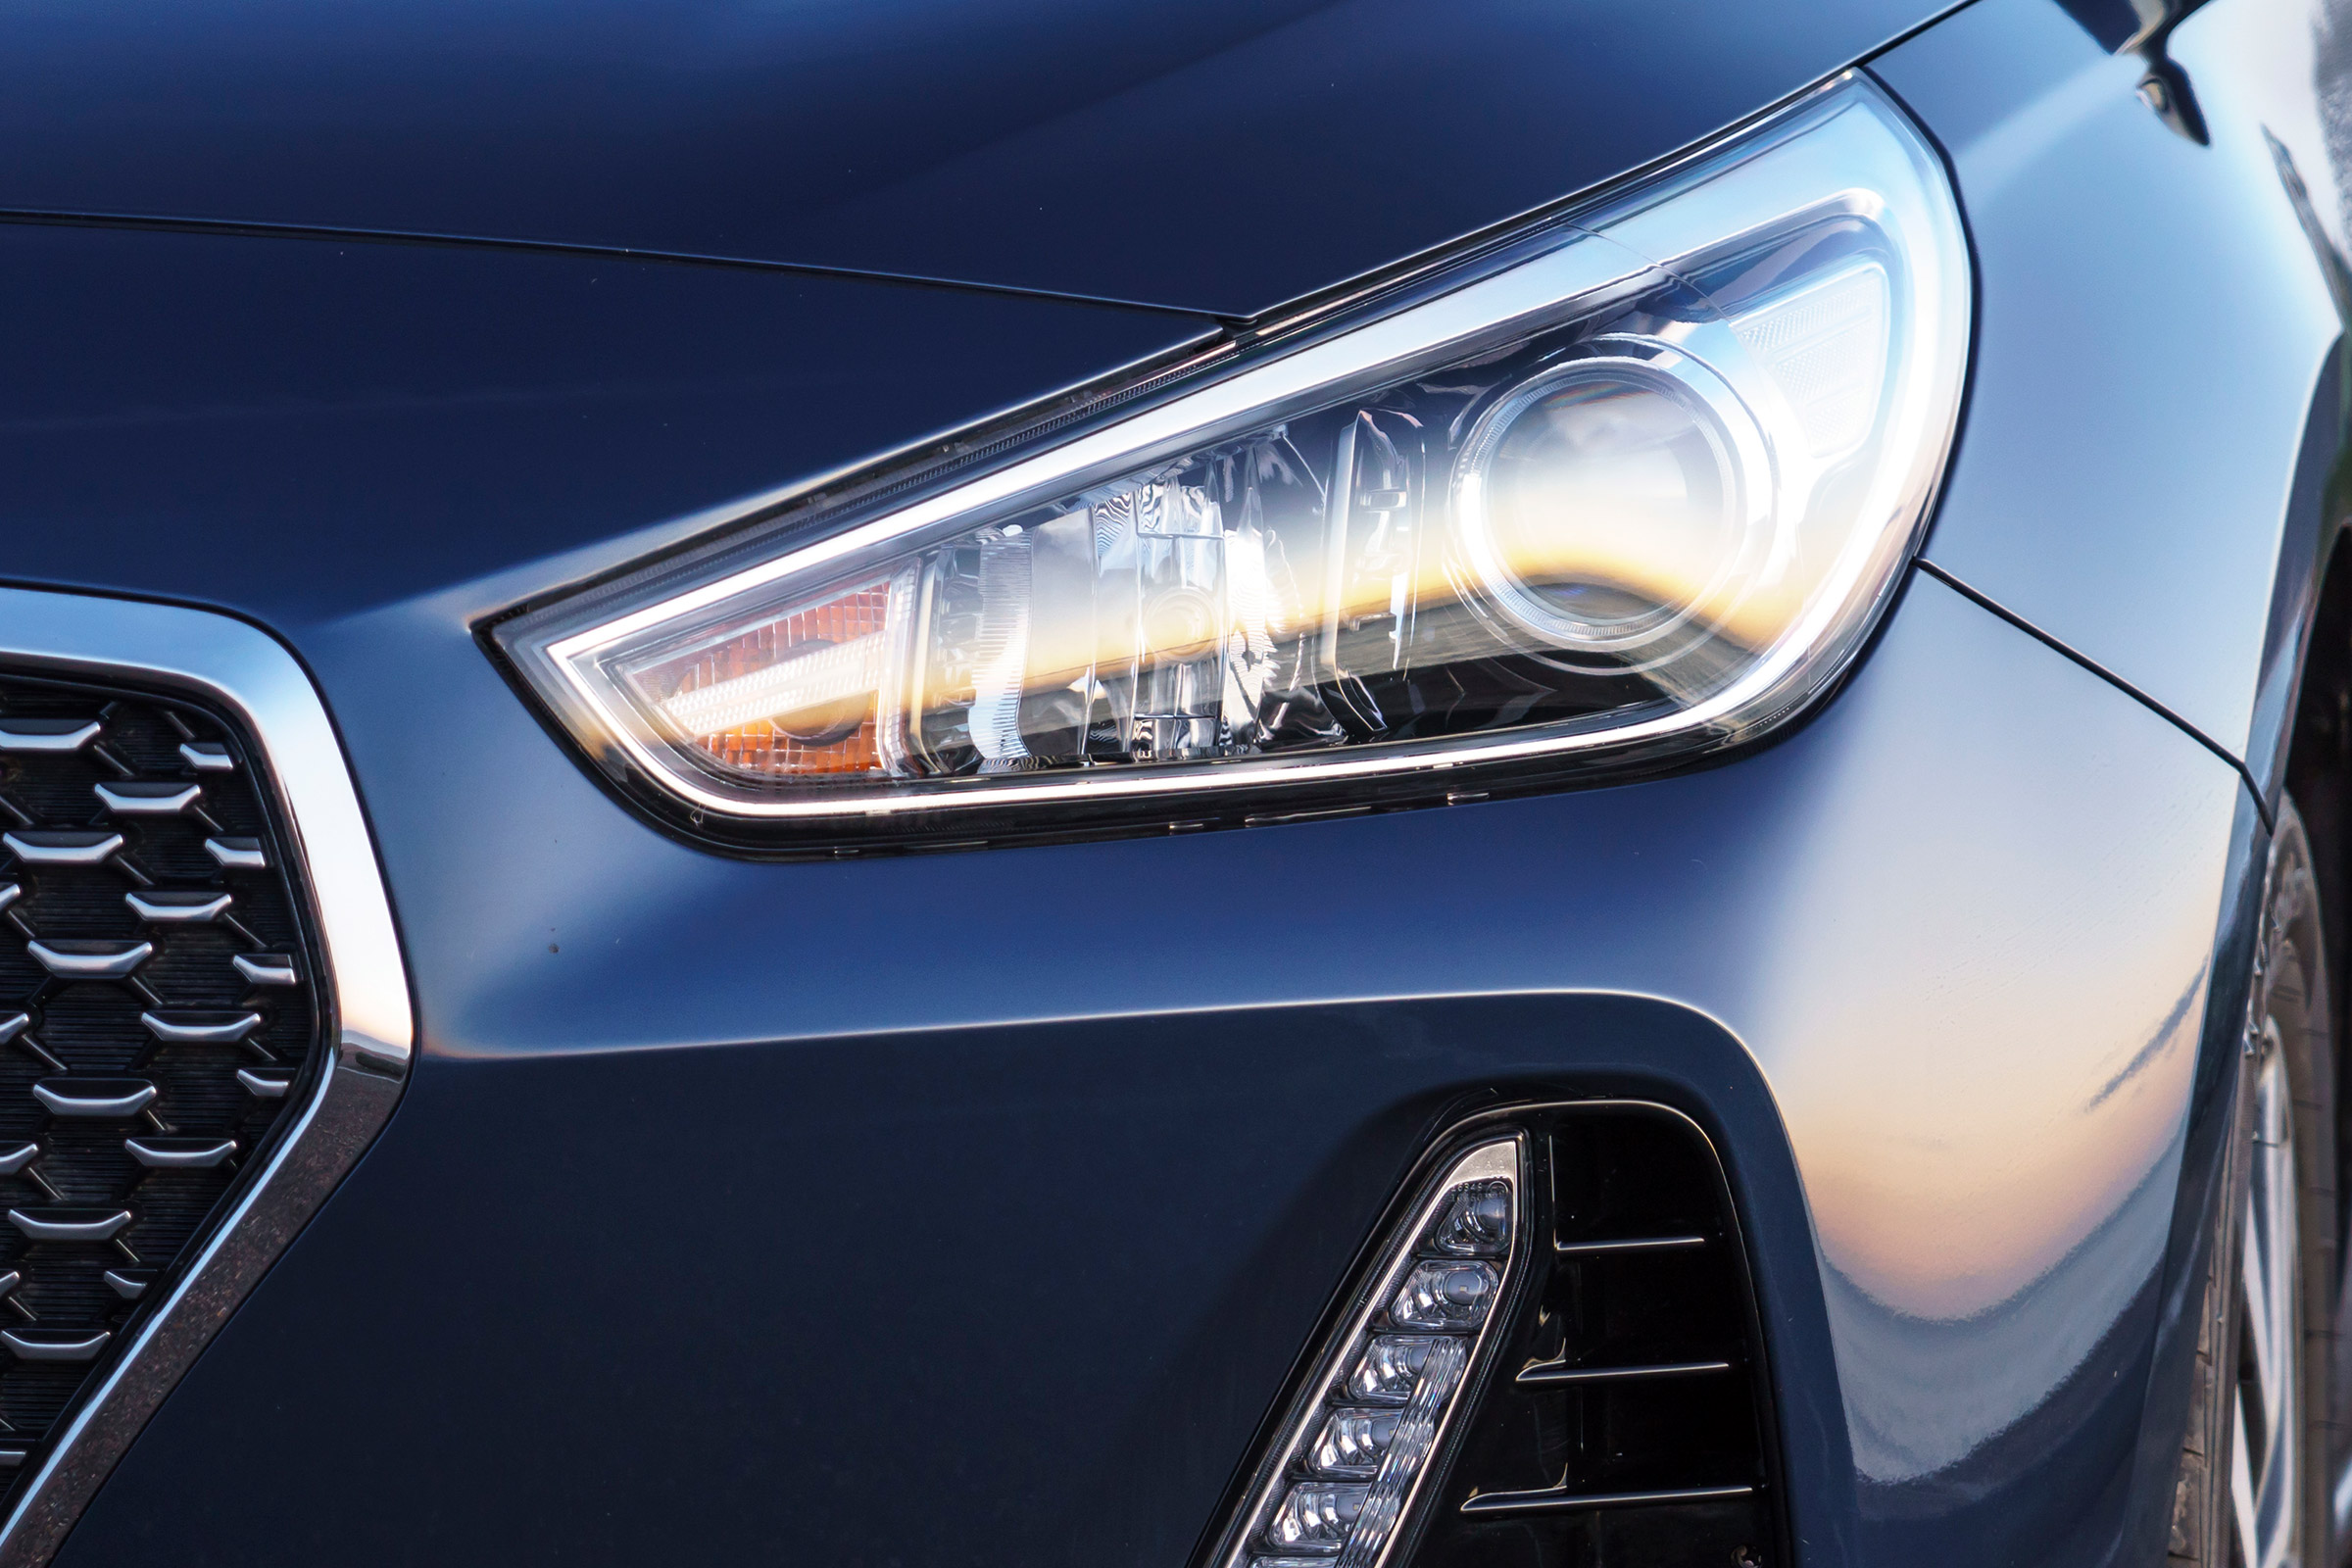 2017 Hyundai I30 Exterior View Headlight (View 23 of 23)